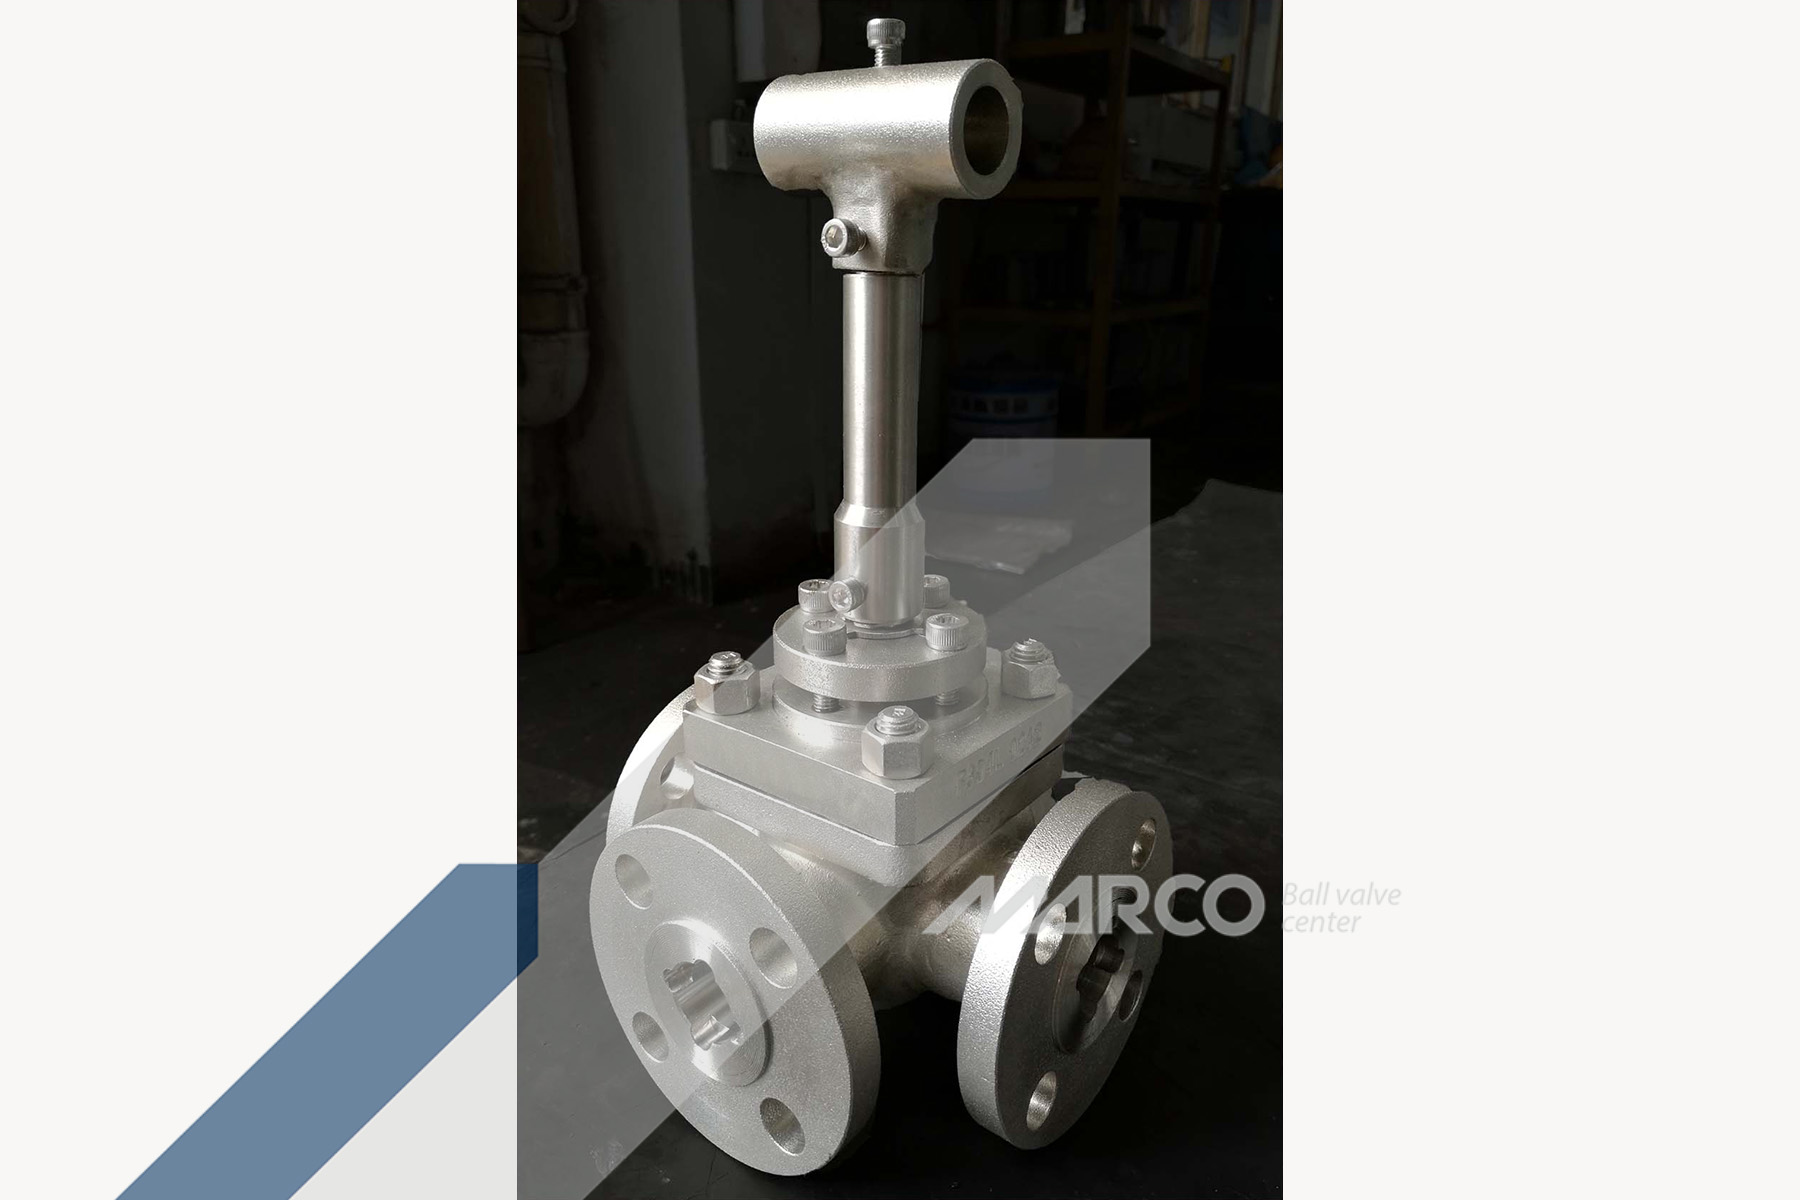 <b>THREE-WAY BALL VALVE</b>